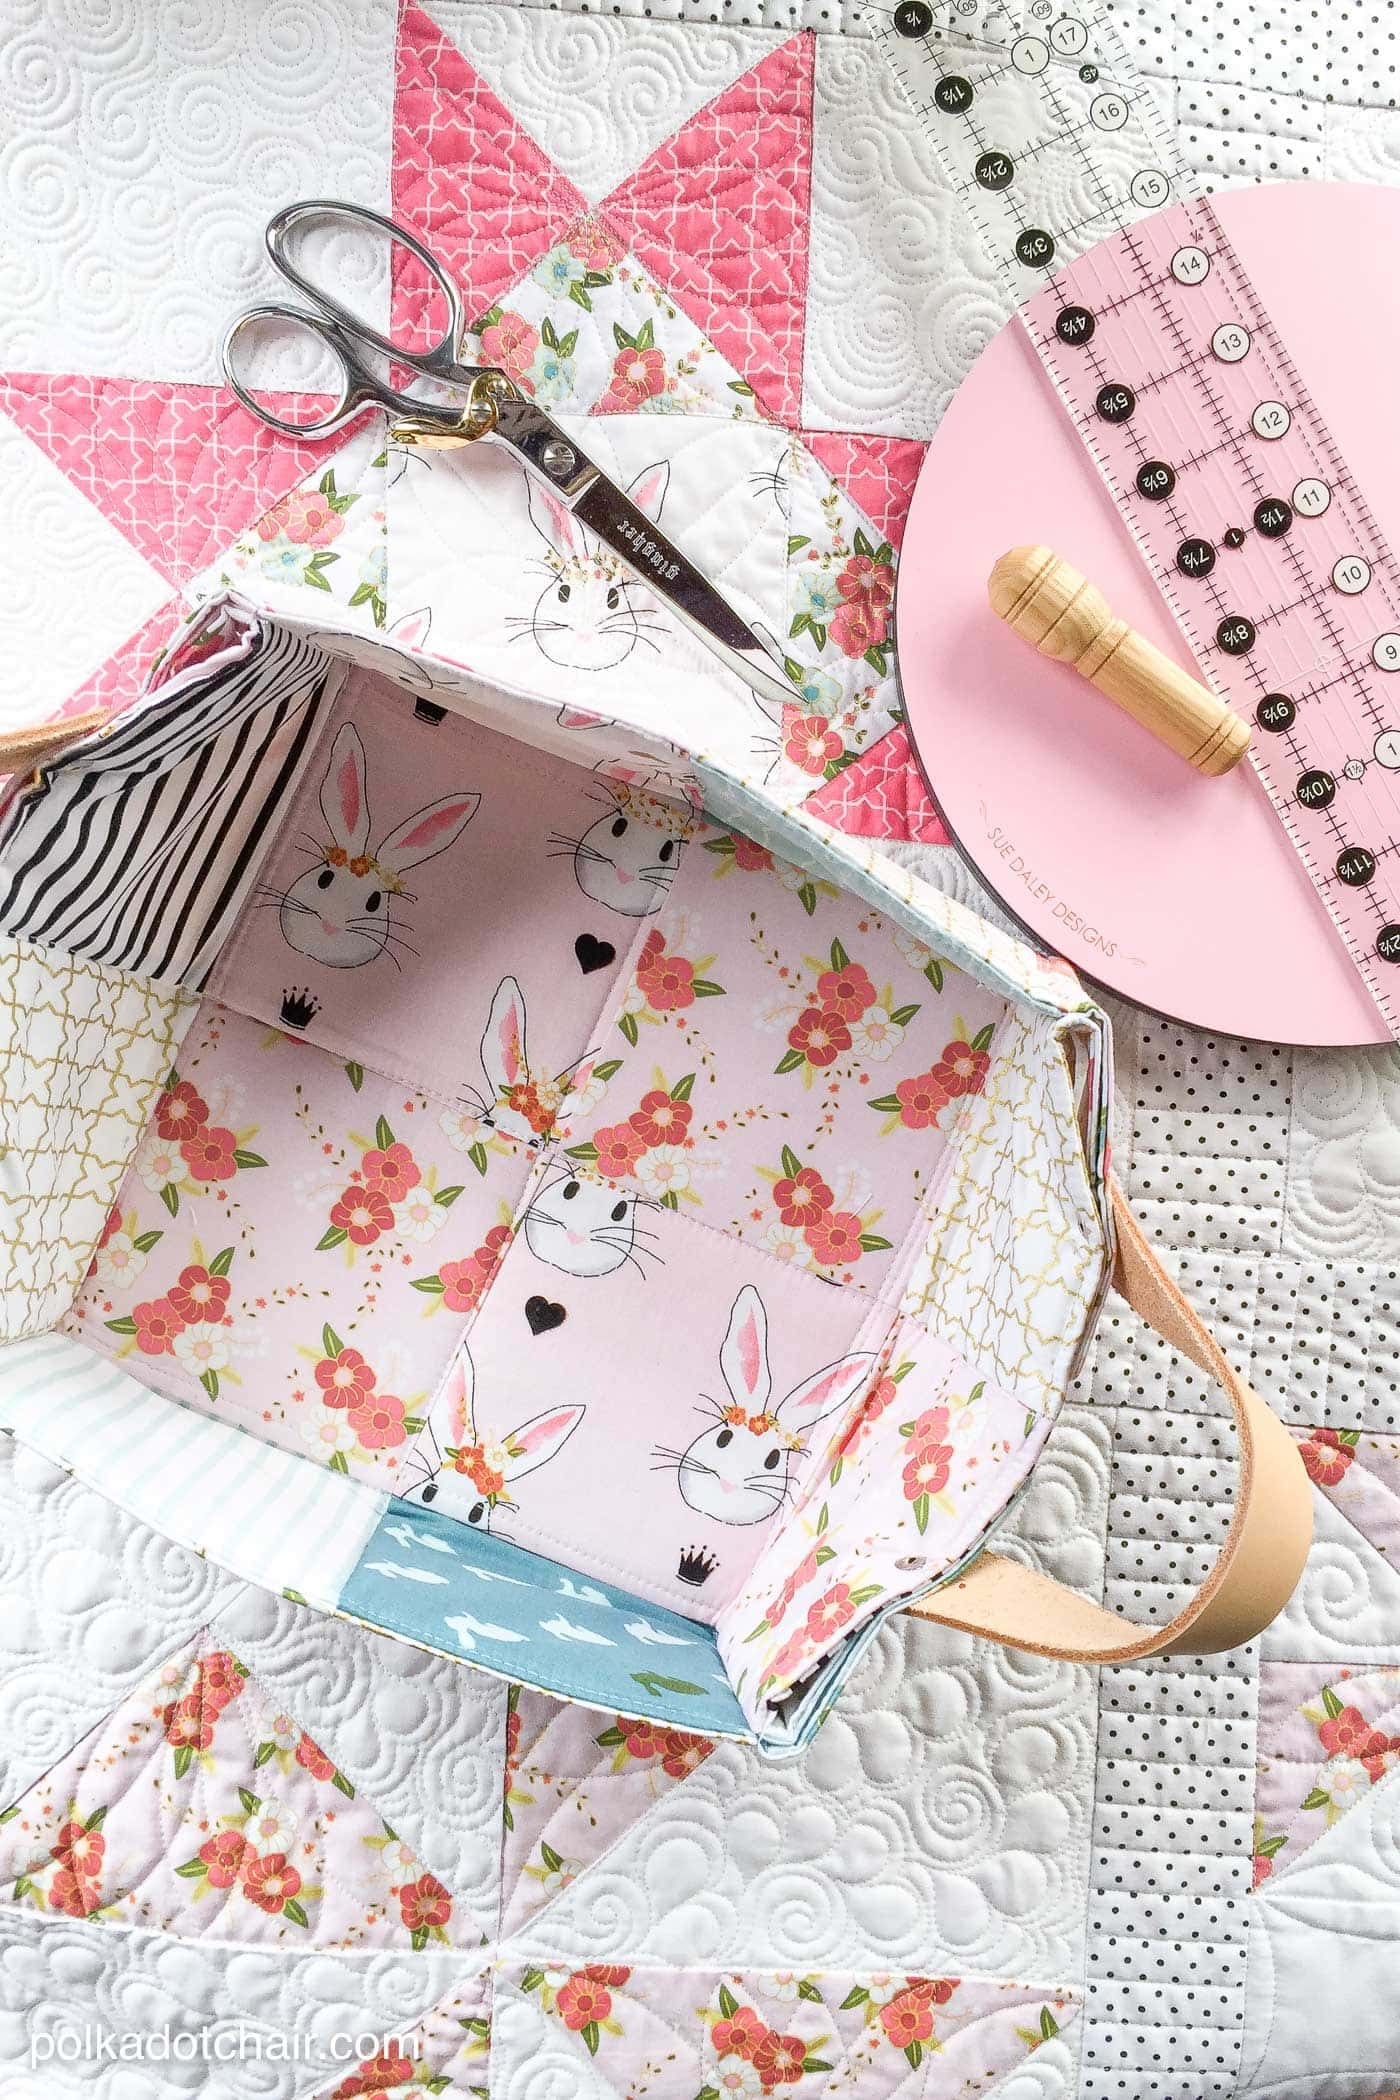 Craftsy coupon code 2019